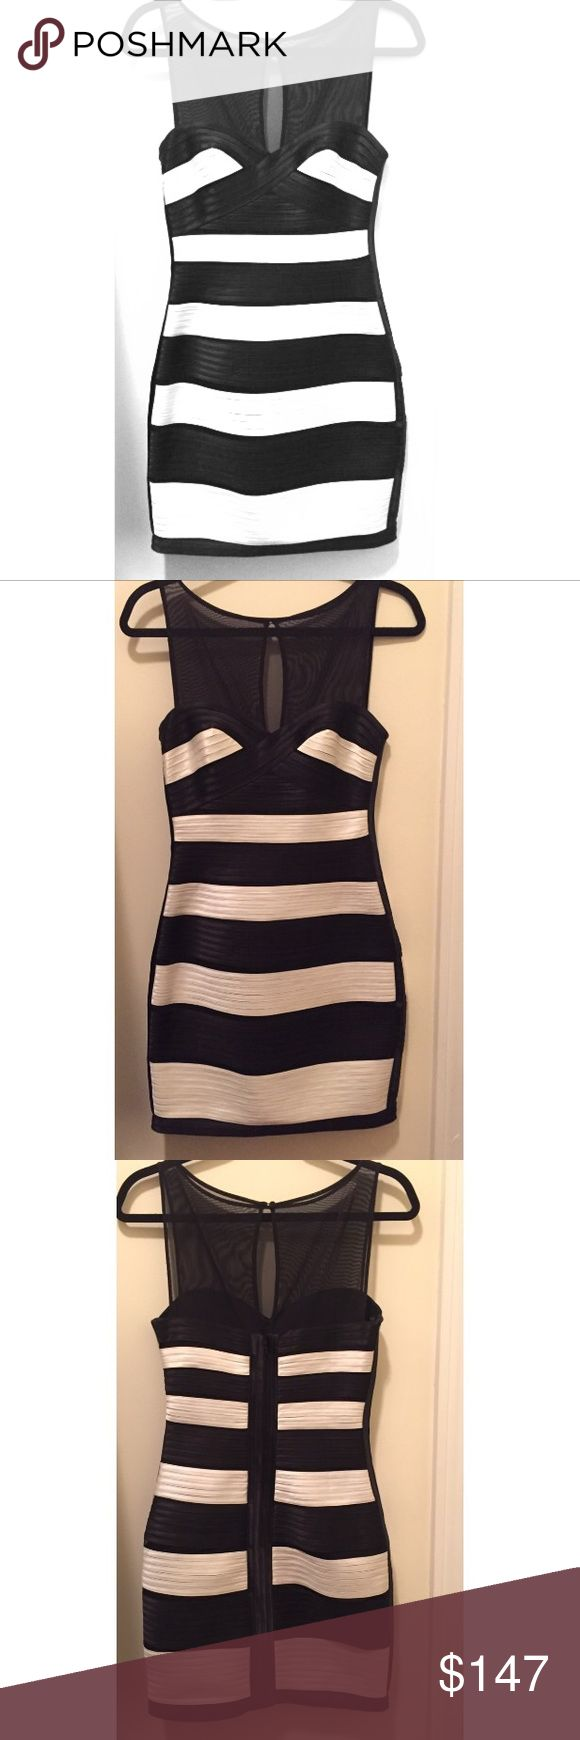 BCBG Cocktail Dress Black and white dress, very classy, suitable for formal occasions, size 4, worn once at a Gala dinner, in great condition. BCBGMaxAzria Dresses Midi